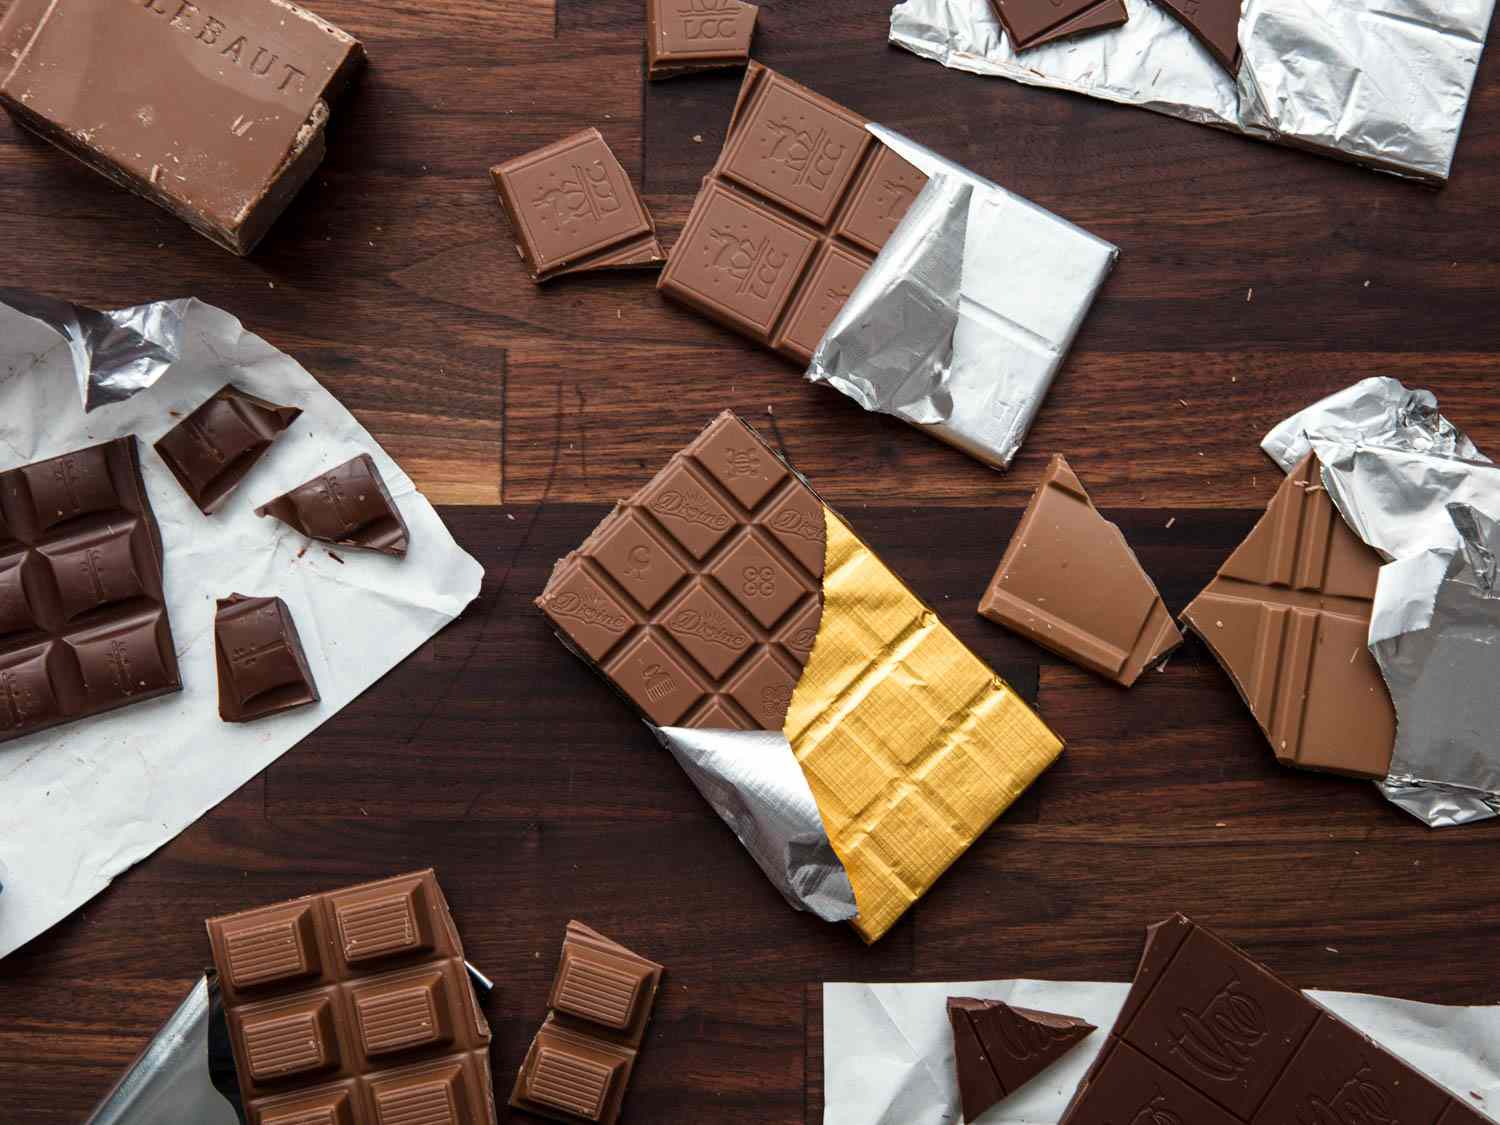 An assortment of milk chocolate bars, unwrapped or partially wrapped, arranged on a wooden background